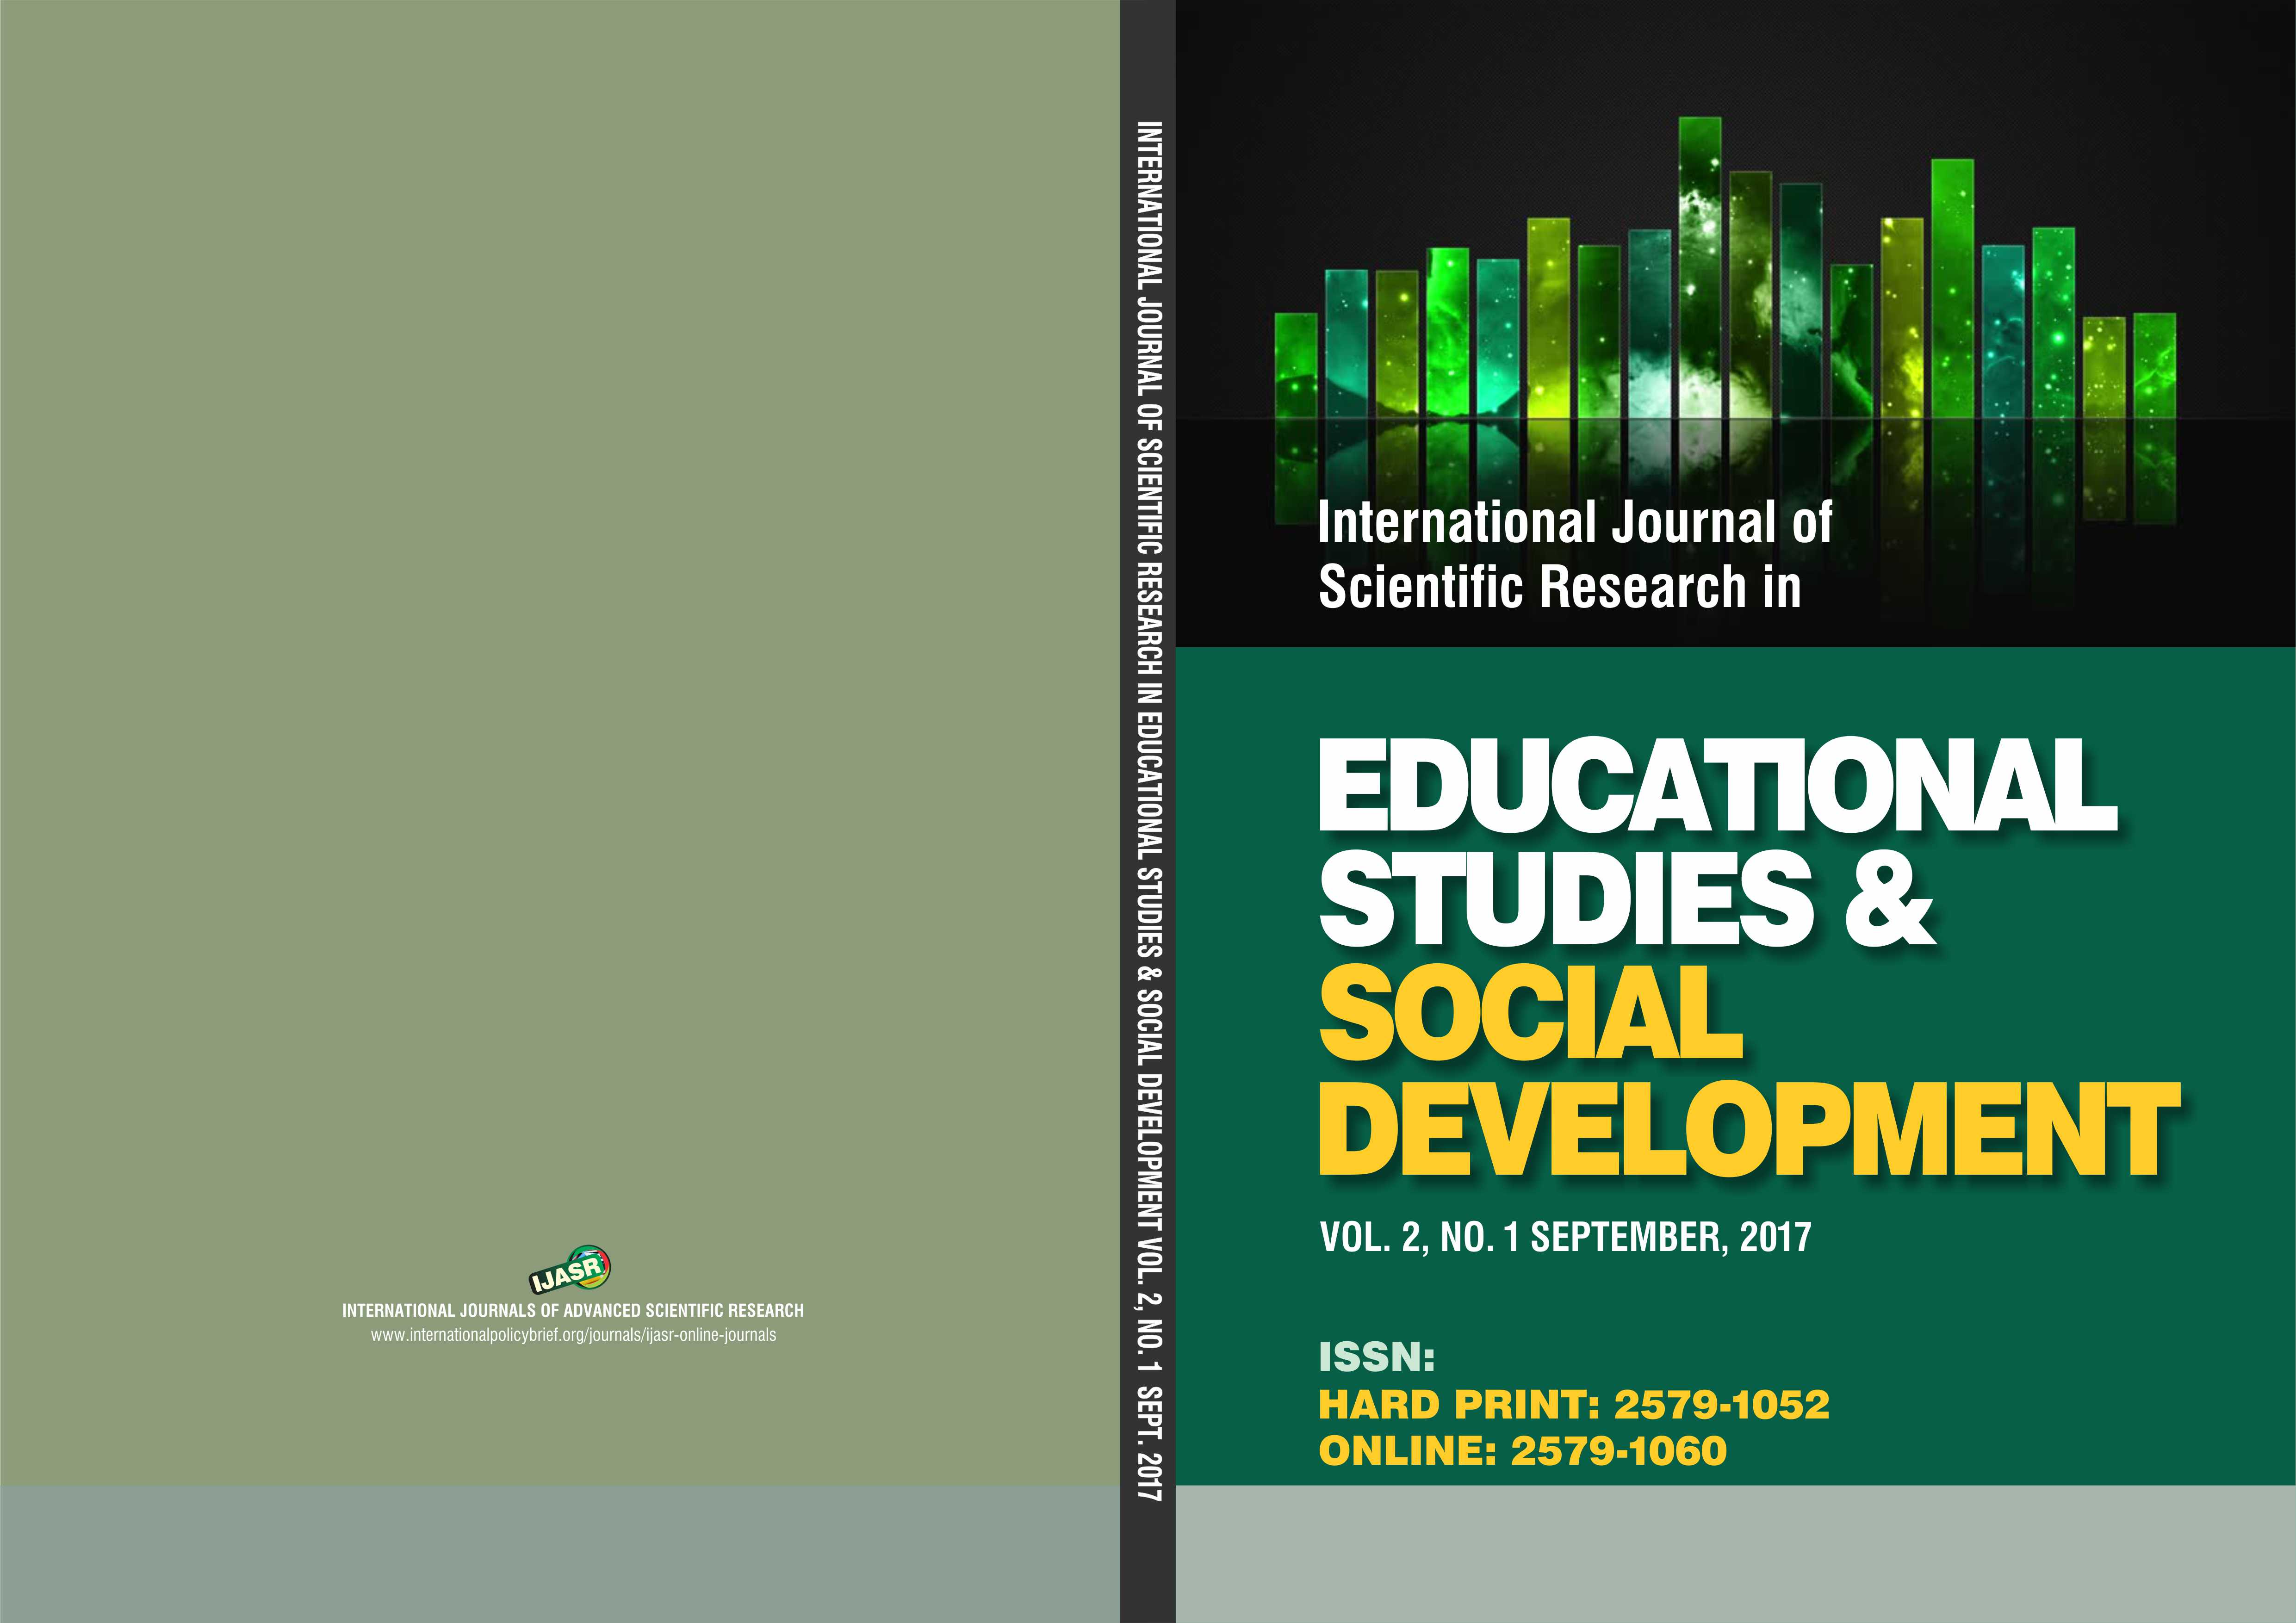 international journal of academic research International journal of academic research in business and social sciences regular articles: these articles should have cautiously confirmed findings and the research methodologies used should be explained in sufficient detail in order to be easily verified by others.